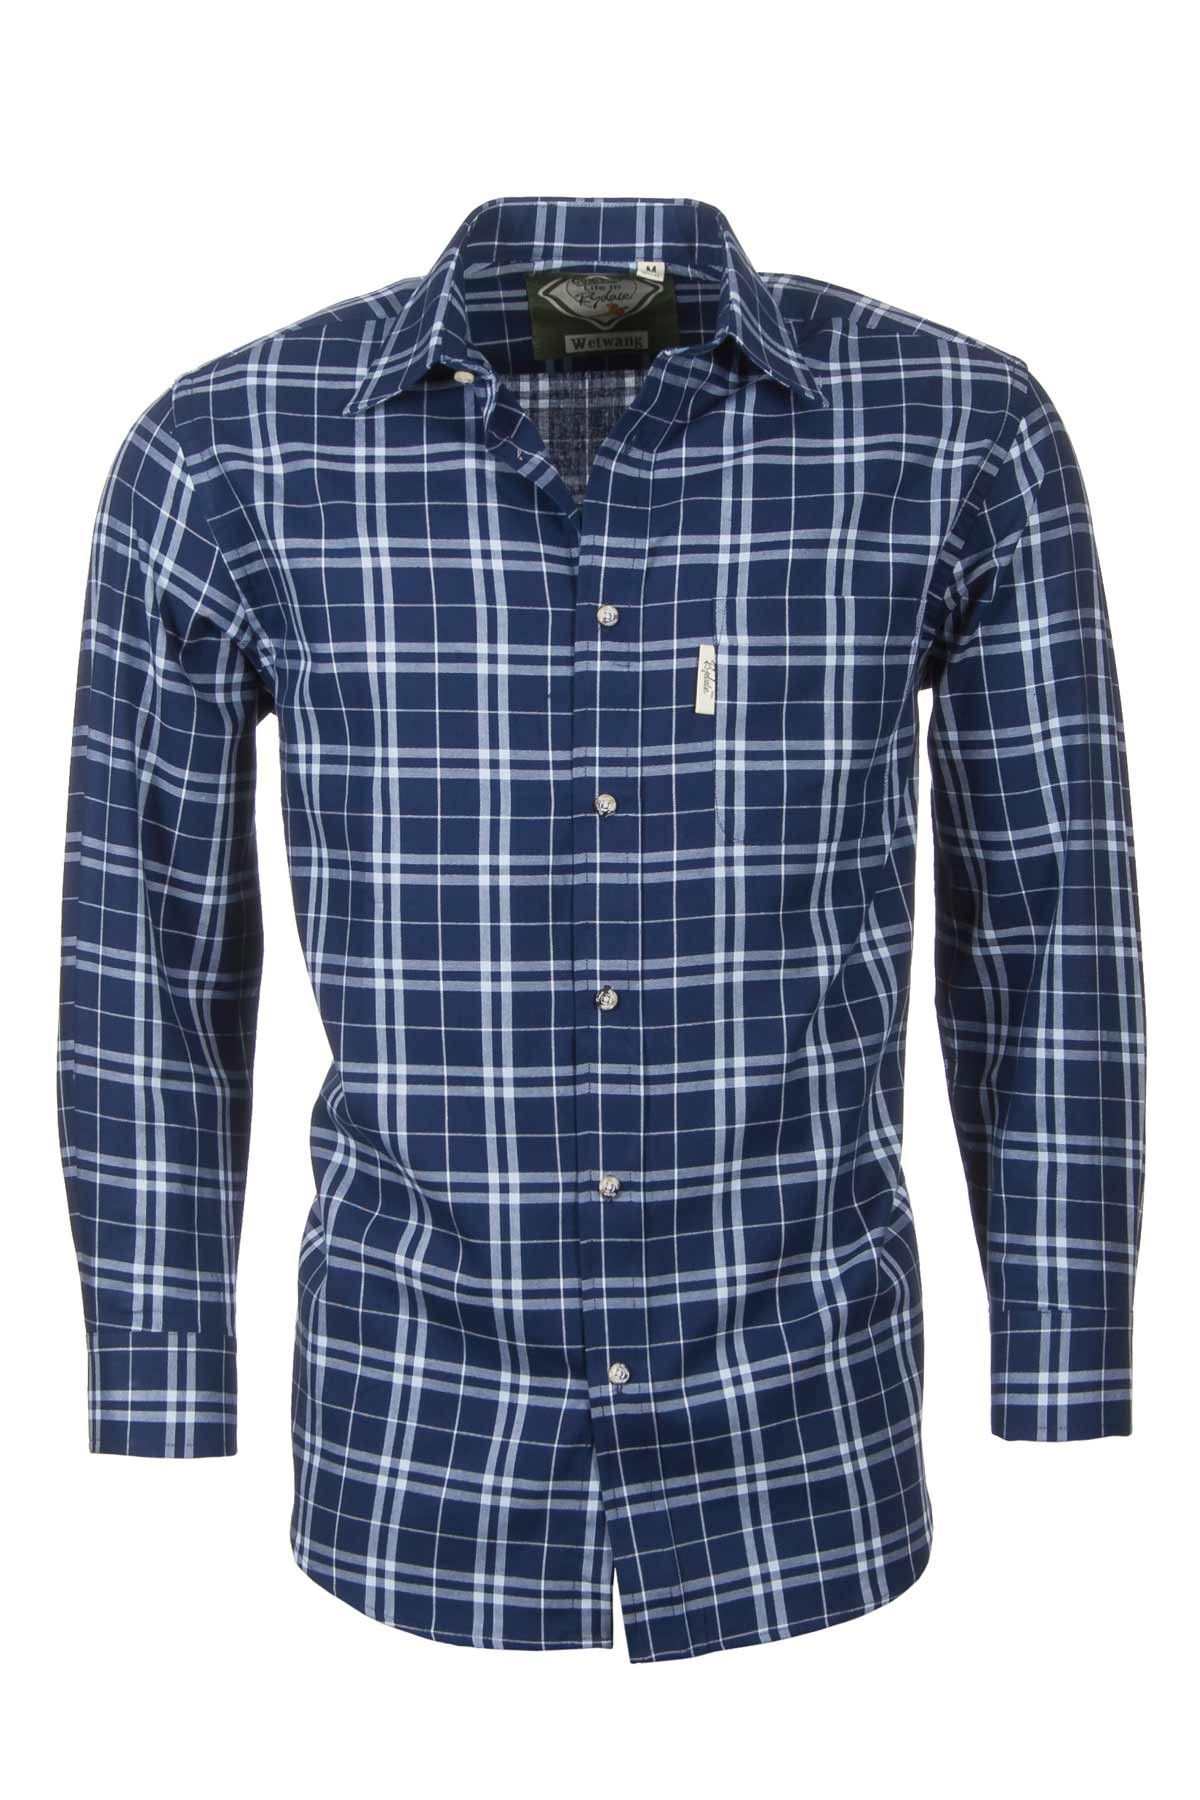 Flannel jacket with fur inside  Rydale Mens Wetwang Country Check Shirts  Fashion Wants  Pinterest